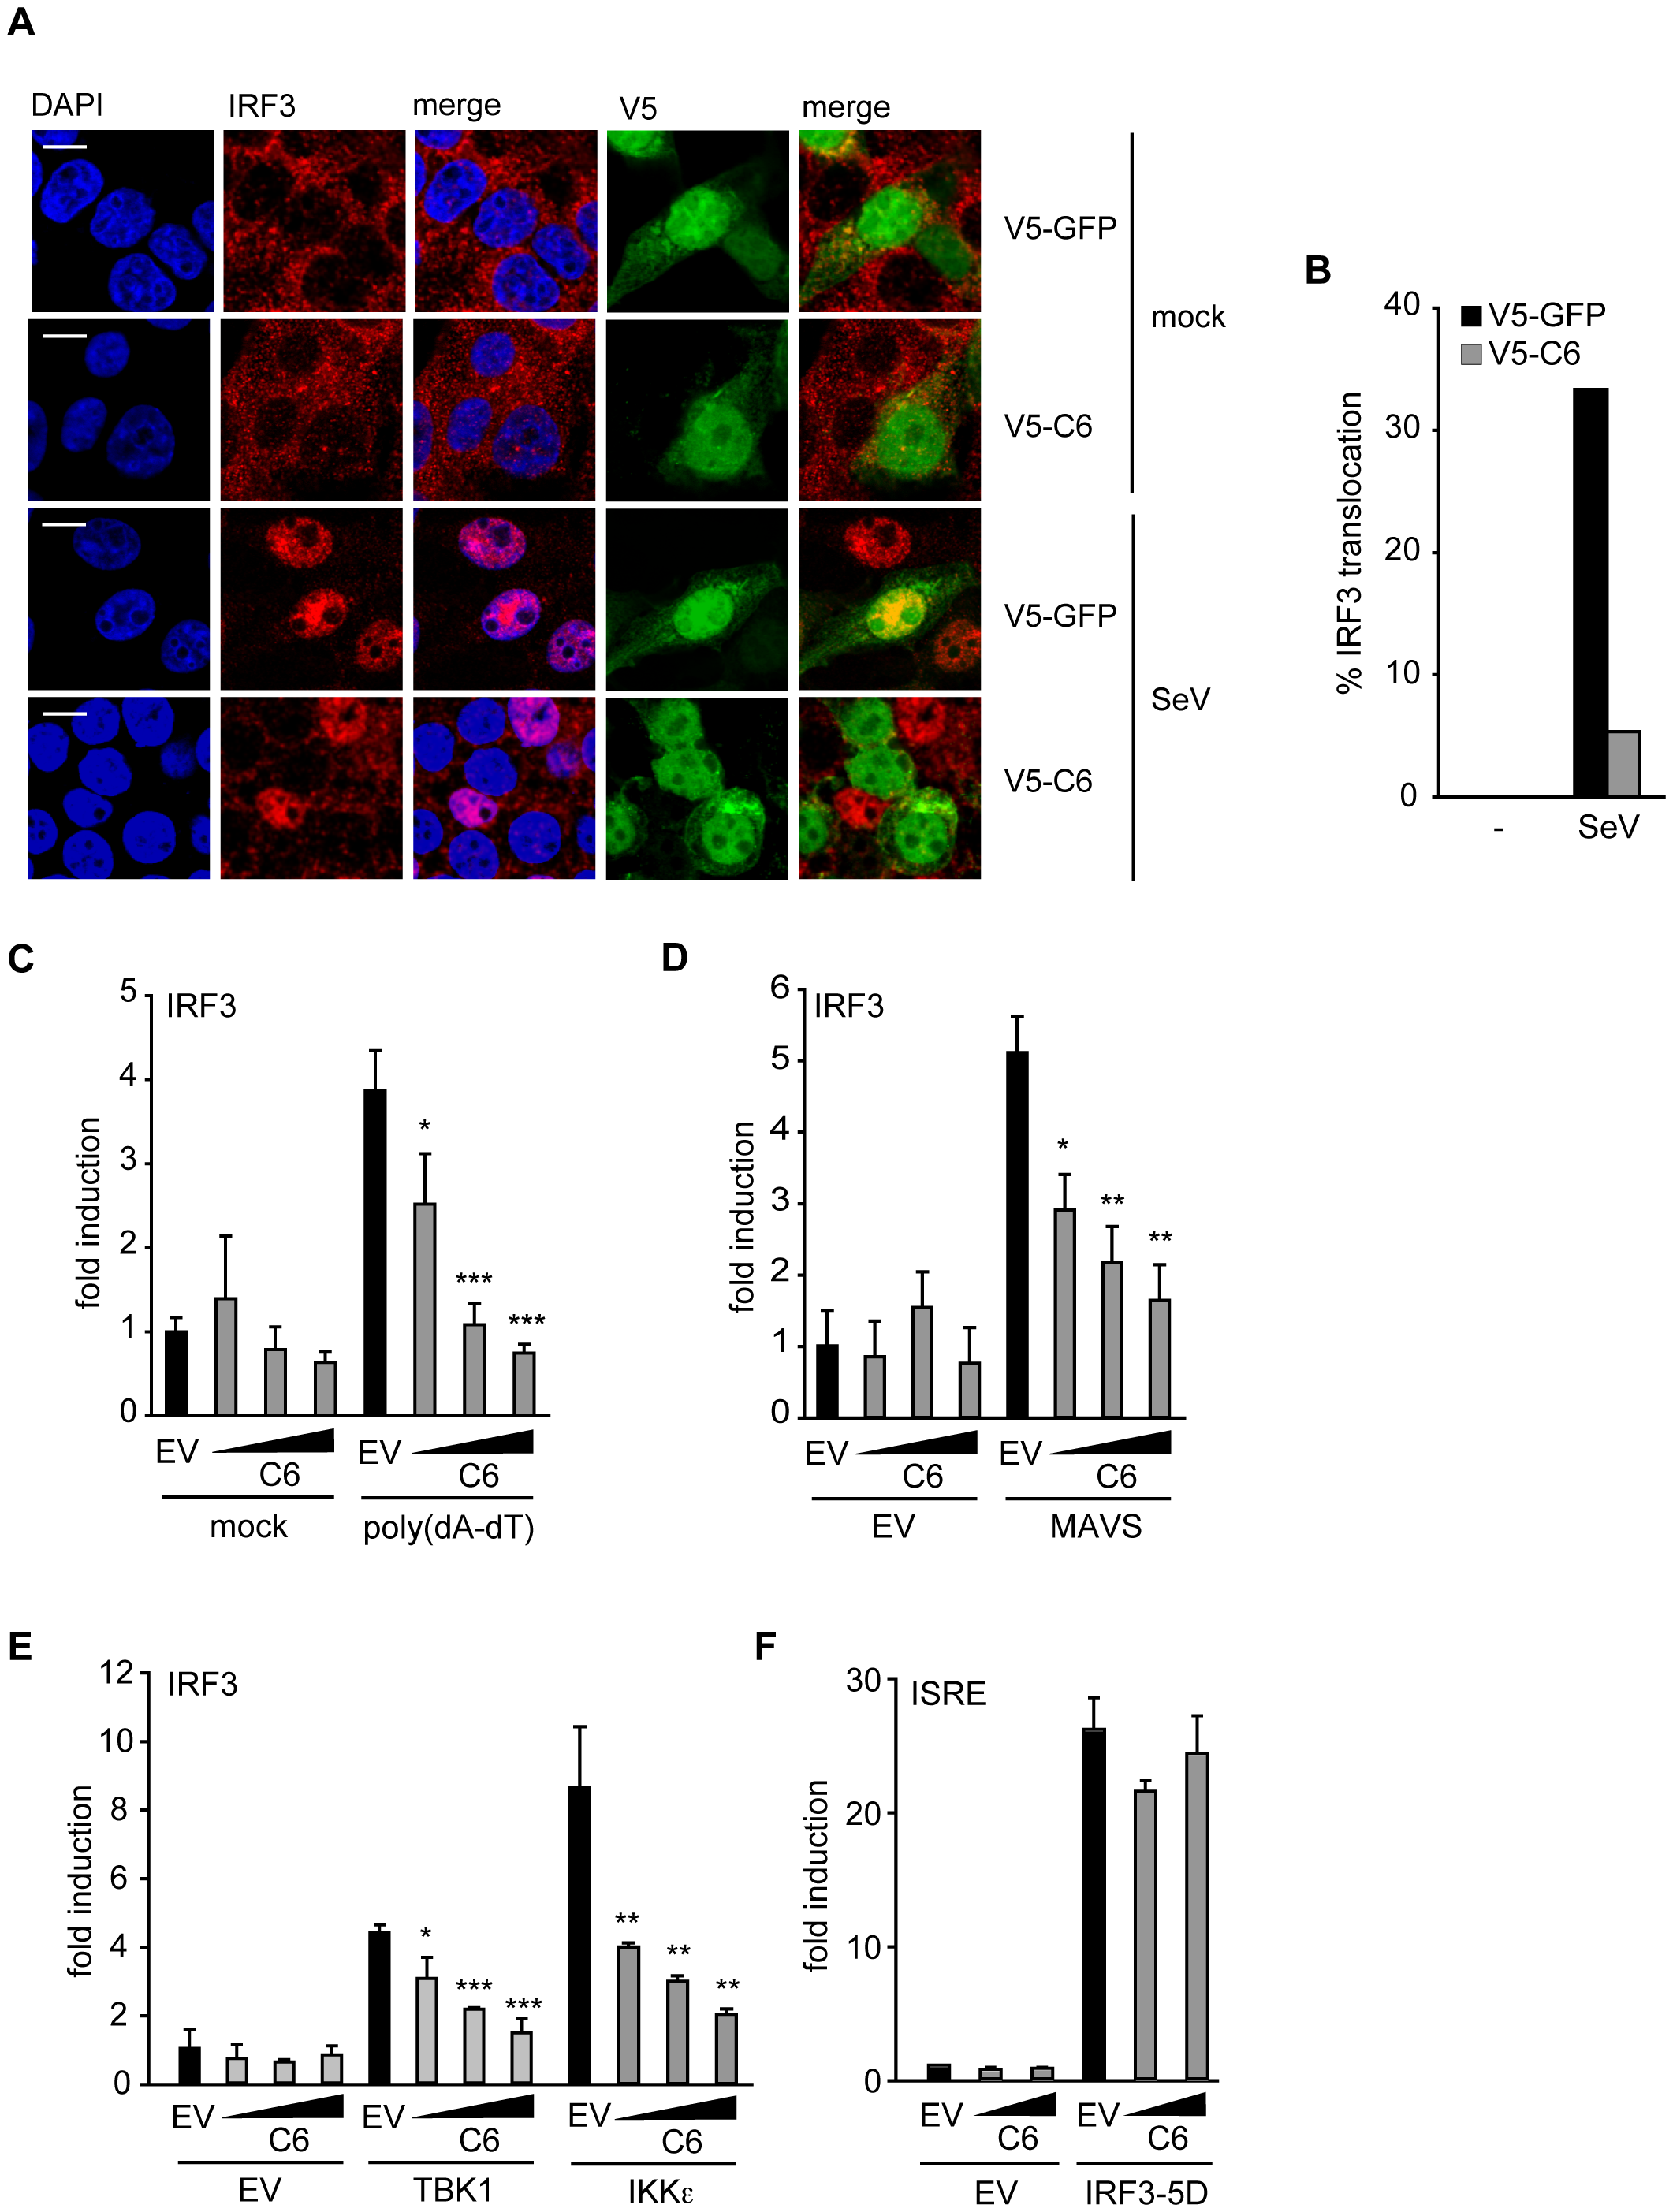 C6 inhibits the nuclear translocation and activation of IRF3.